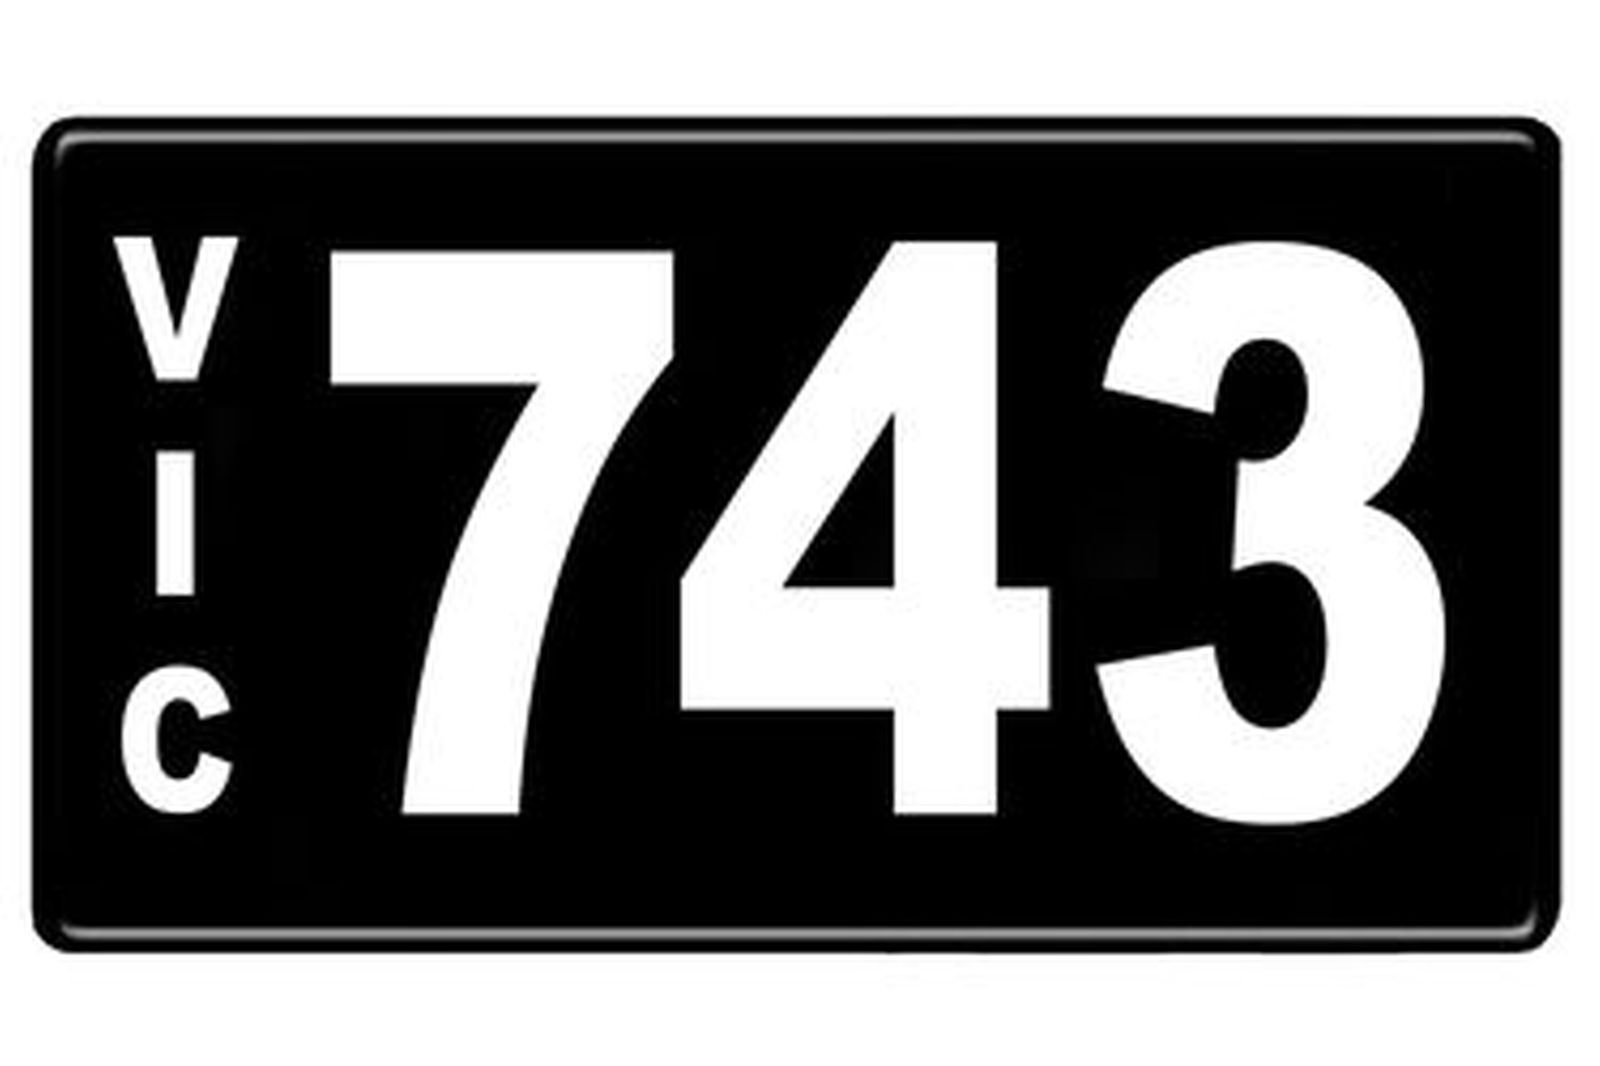 Number Plates - Victorian Numerical Number Plates '743'